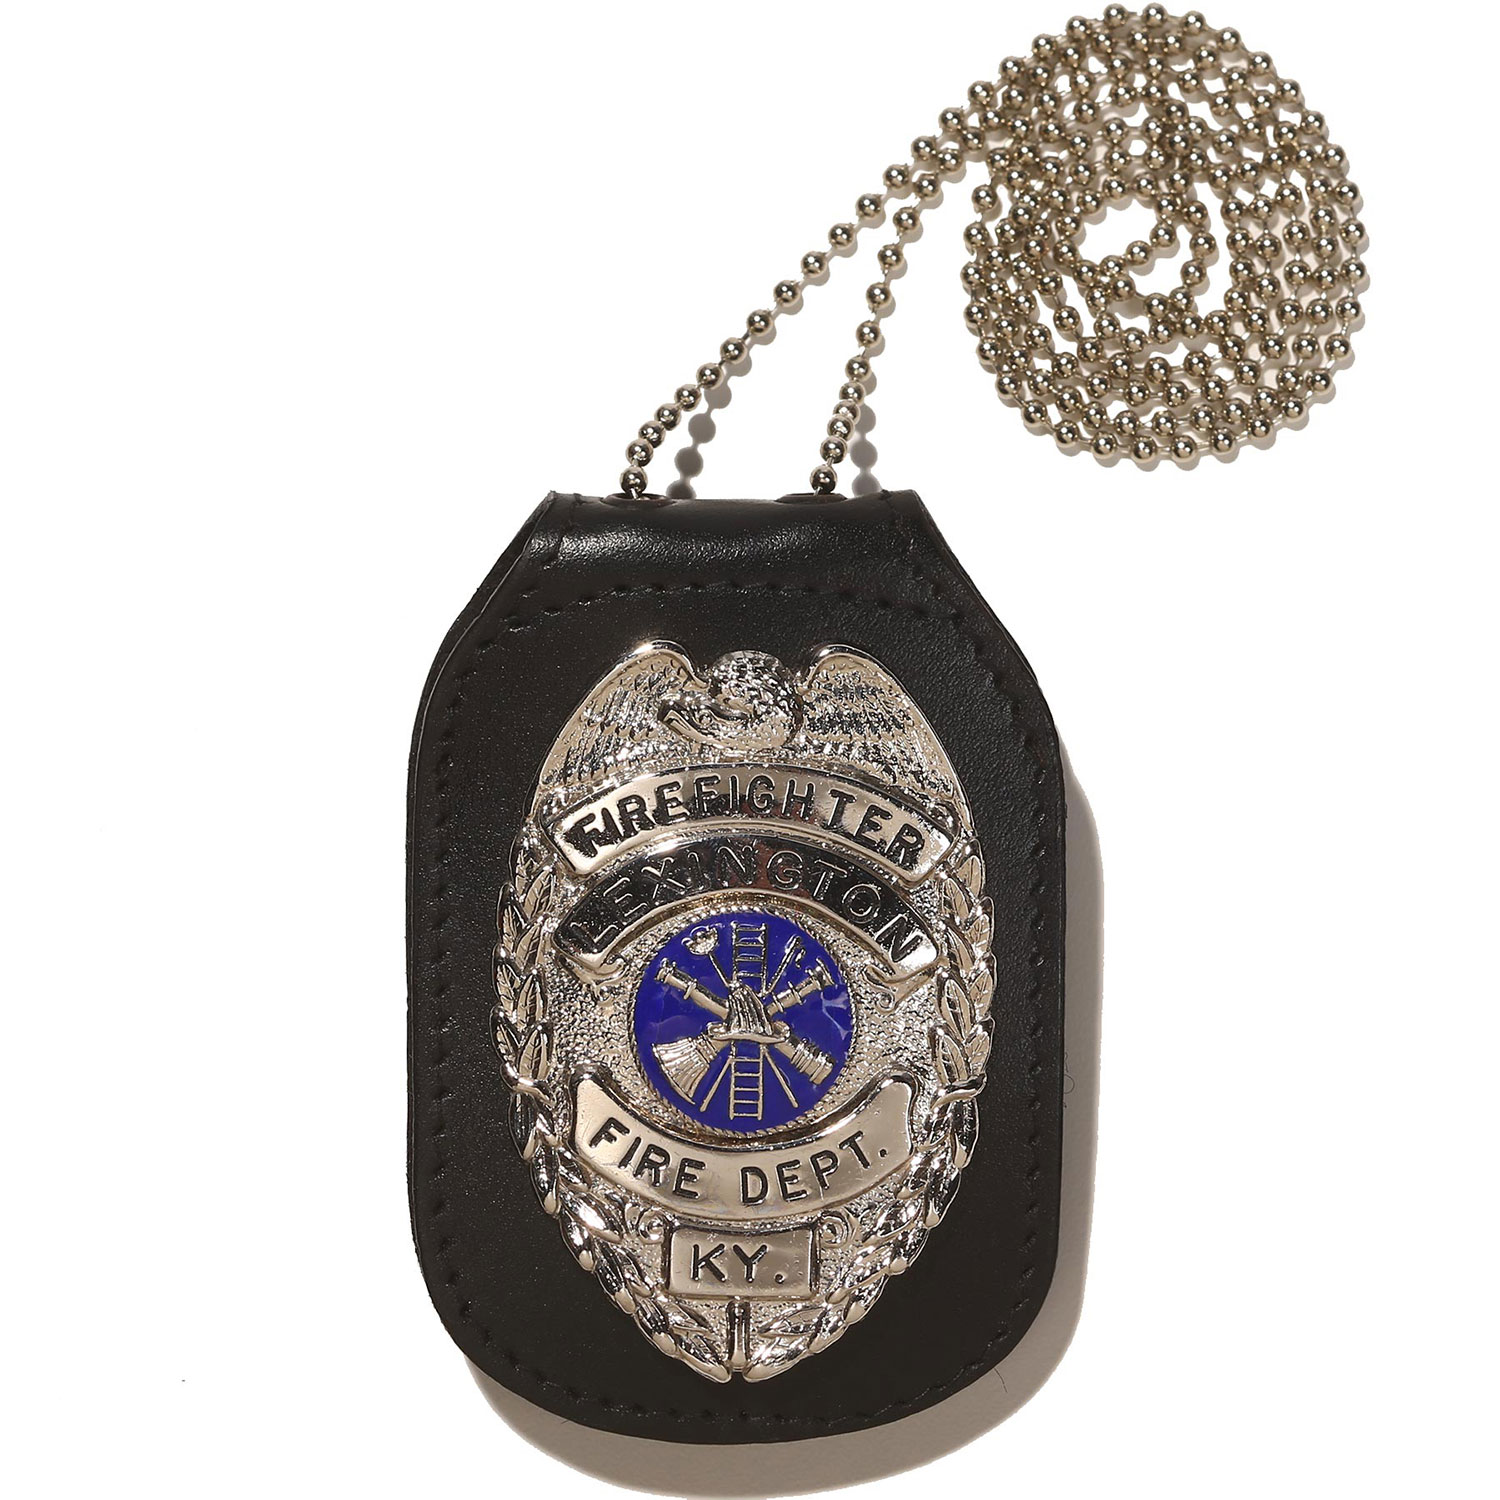 police plain boat copy of necklace yacht pendant badge products blingkingstar the